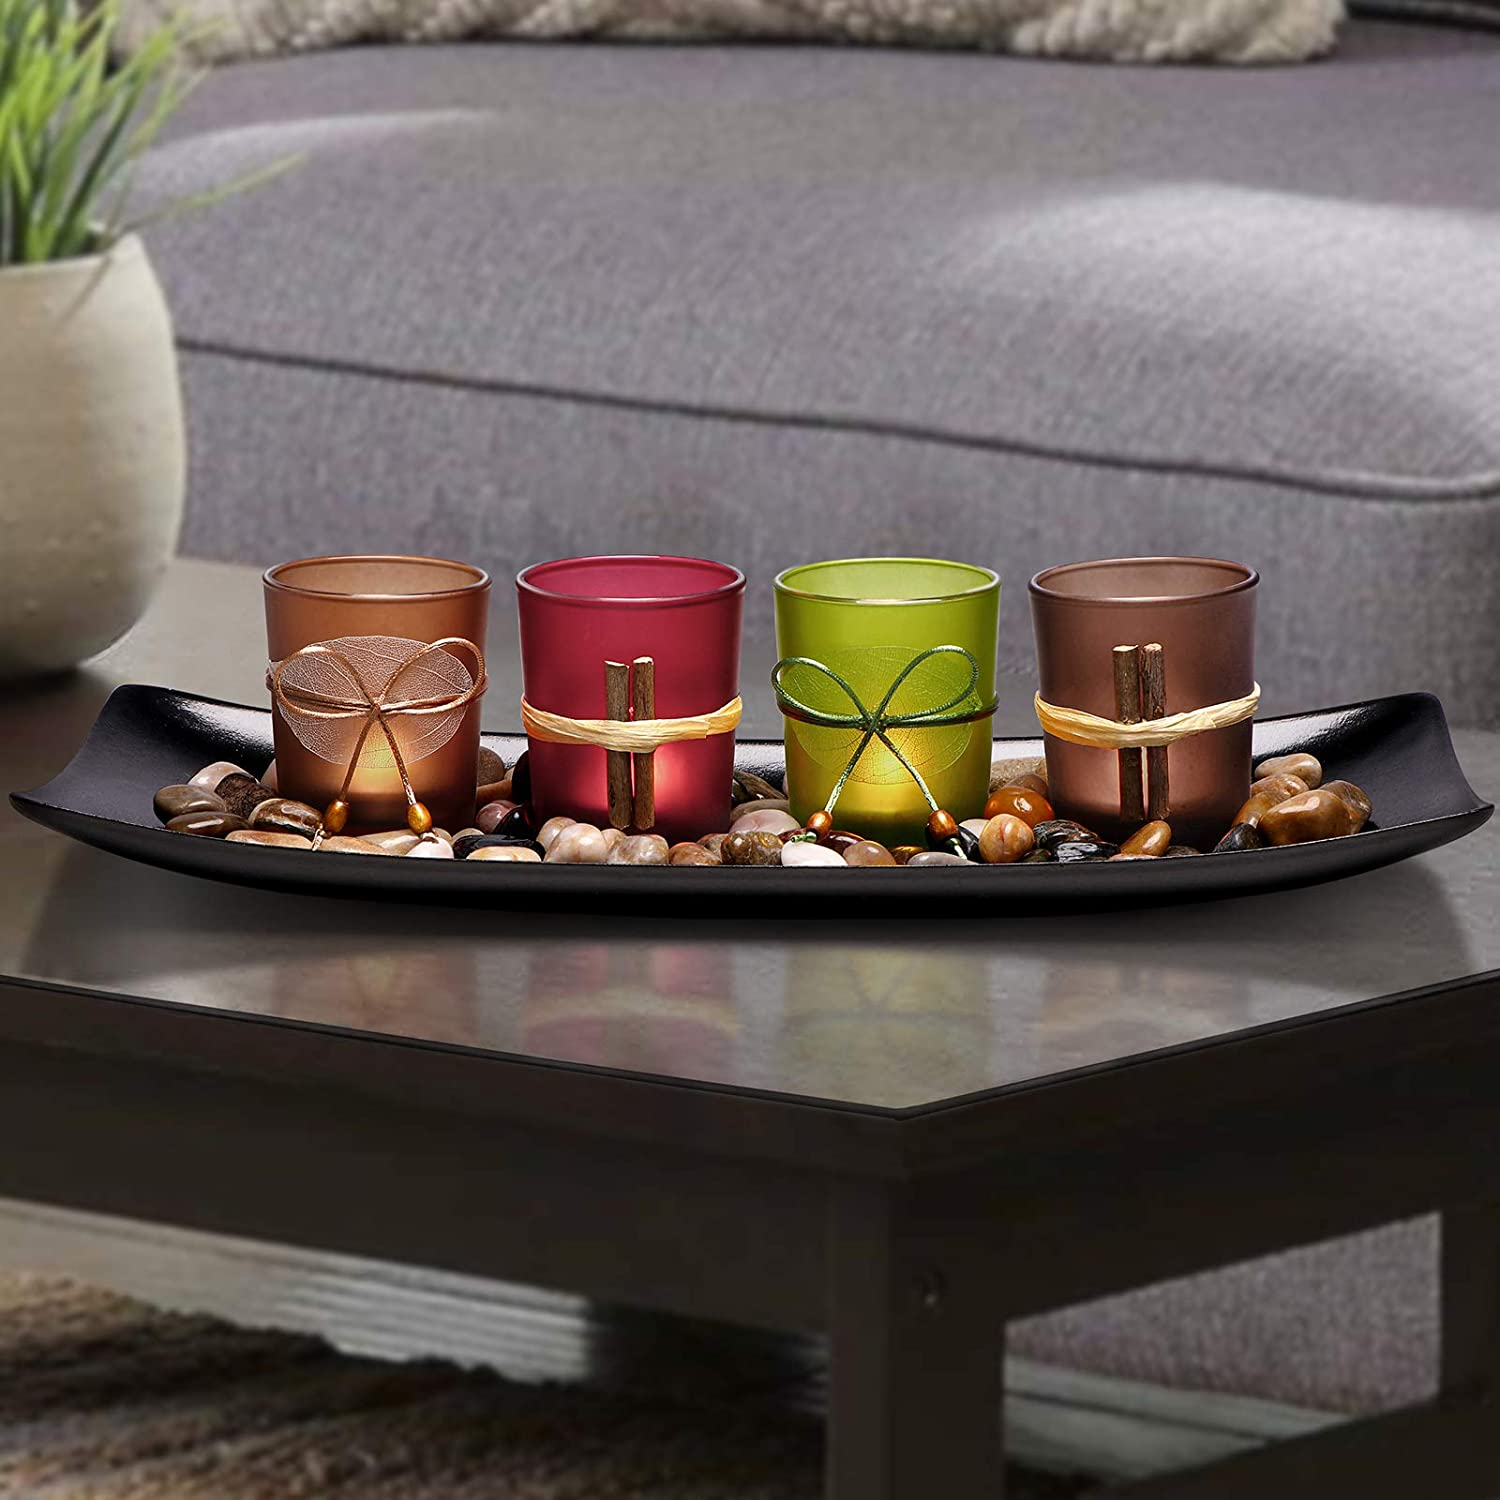 Lamorgift Home Decor Candle Holders Set For Bathroom Decorations Candle Holder Centerpieces For Dining Room Table Living Room Decor Coffee Table Decor Large Tray With 4 Candle Holders Kitchen